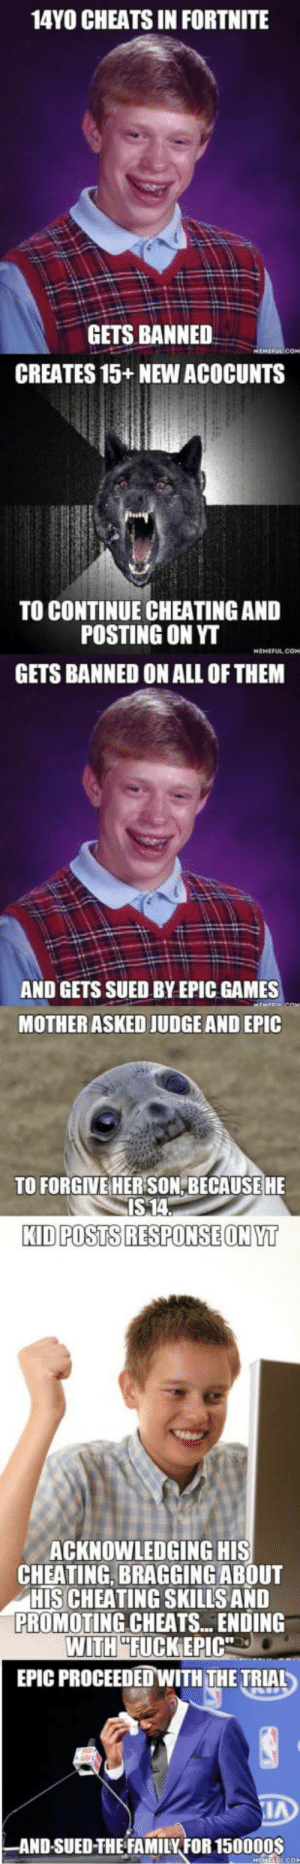 Cheating, Ftw, and Games: 14YO CHEATS IN FORTNITE  GETS BANNED  CREATES 15+NEW ACOCUNTS  TO CONTINUE CHEATING AND  POSTING ON YT  GETS BANNED ON ALL OF THEM  AND GETS SUED BY EPIC GAMES  MOTHER ASKED JUDGE AND EPIC  TO FORGIVE HER SON,BECAUSE HE  KID POSTS RESPONSE ONYT  ACKNOWLEDGING HIS  CHEATING, BRAGGING ABOUT  HIS CHEATING SKILLS AND  PROMOTING CHEATS.. ENDING  WITHHELIKER10%  EPIC PROCEEDED WITH THE TRIAL  AND-SUED-THEFAMILYFOR 150000S In case you missed this story EPIC FTW.